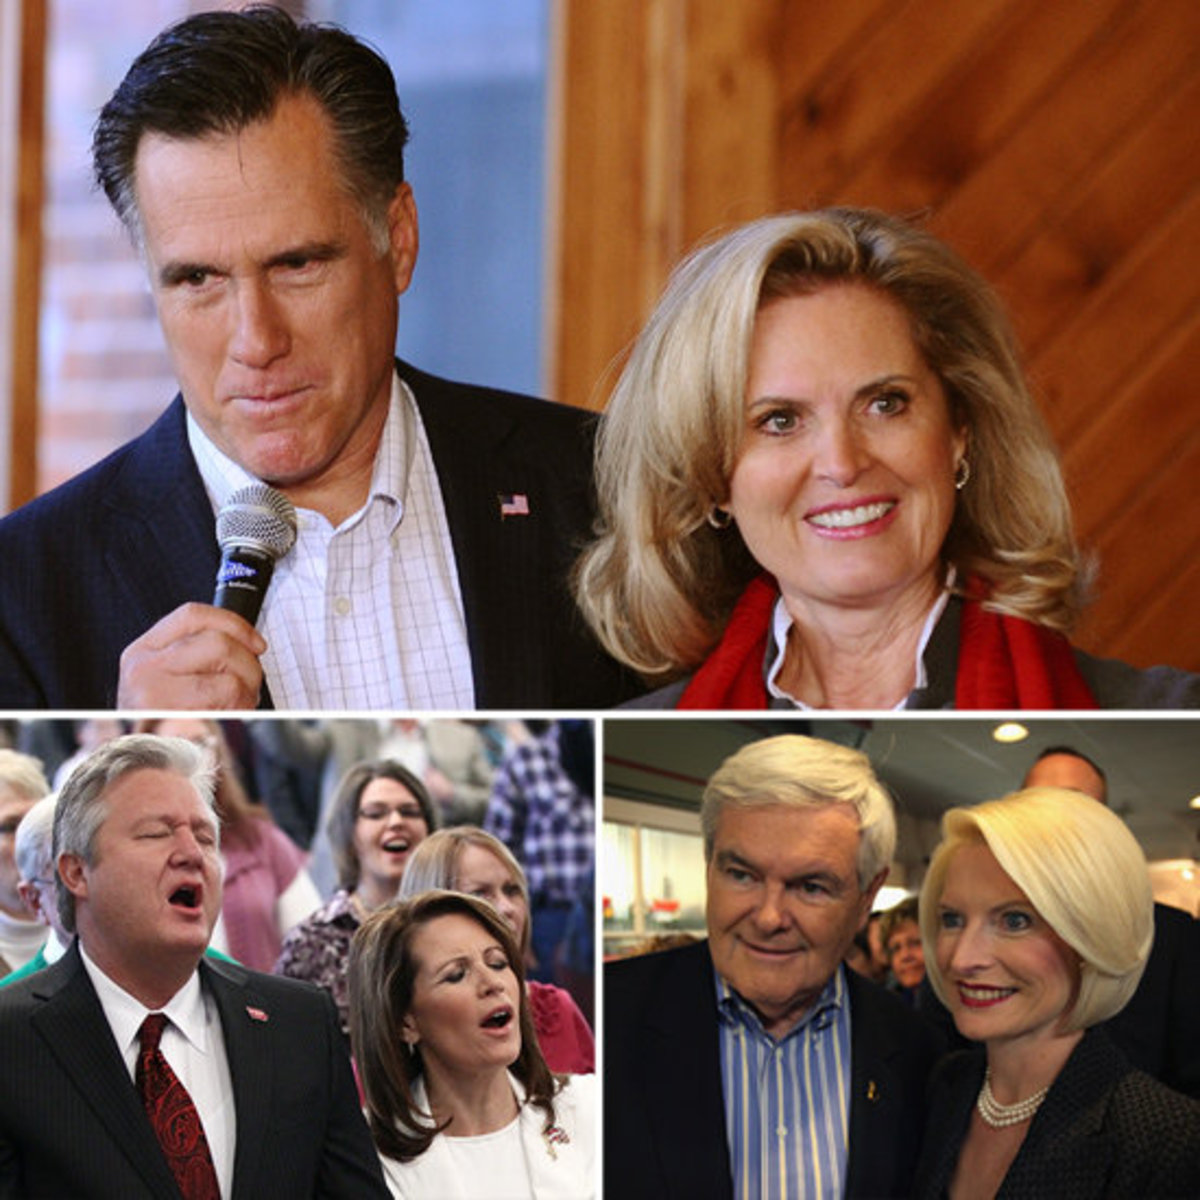 Some of the 2012 Republican candidates and their spouses